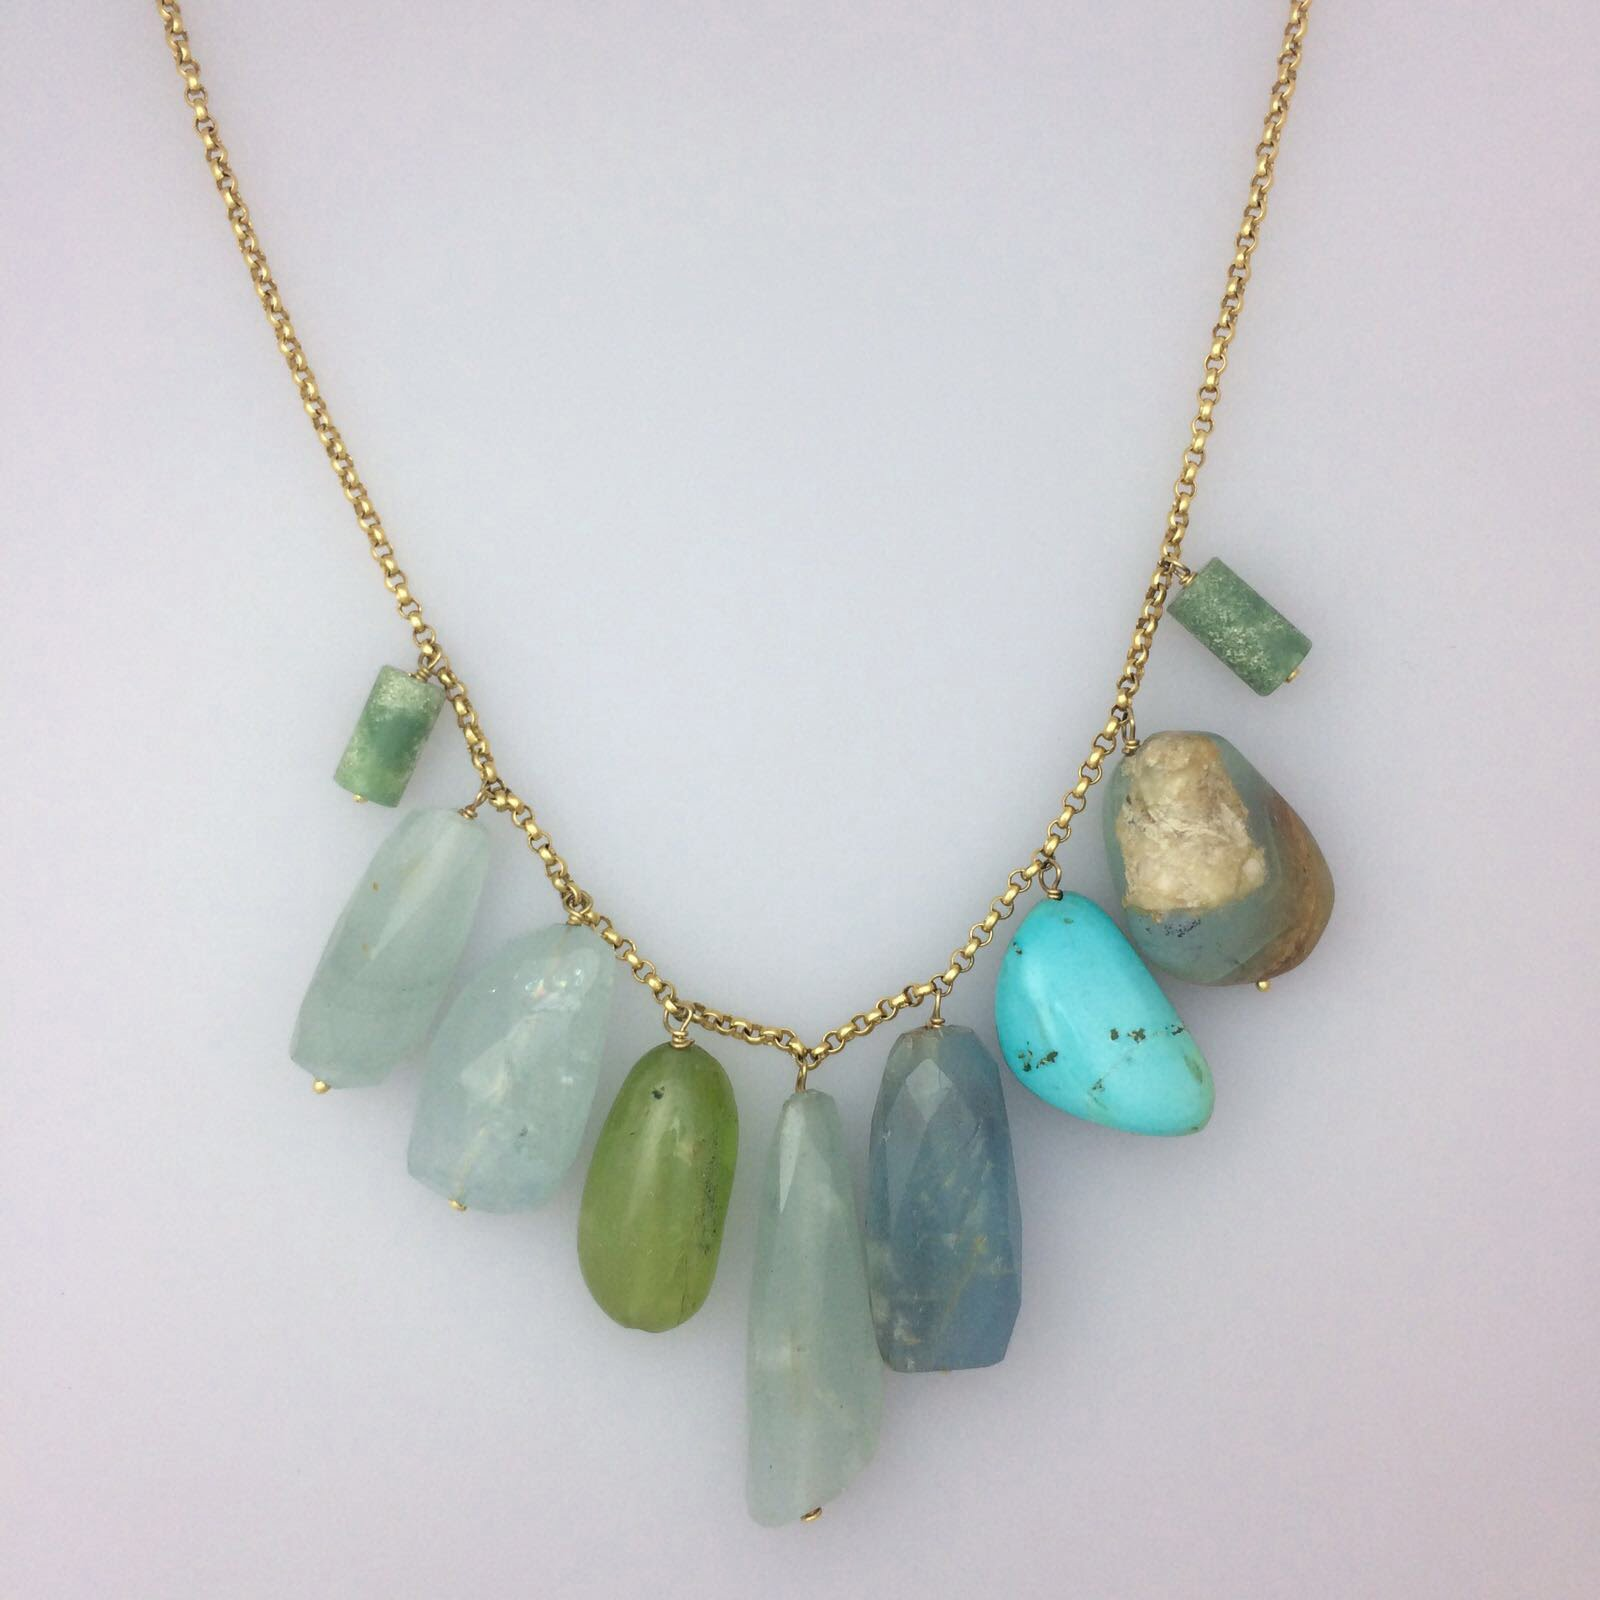 semi precious 18kt necklace